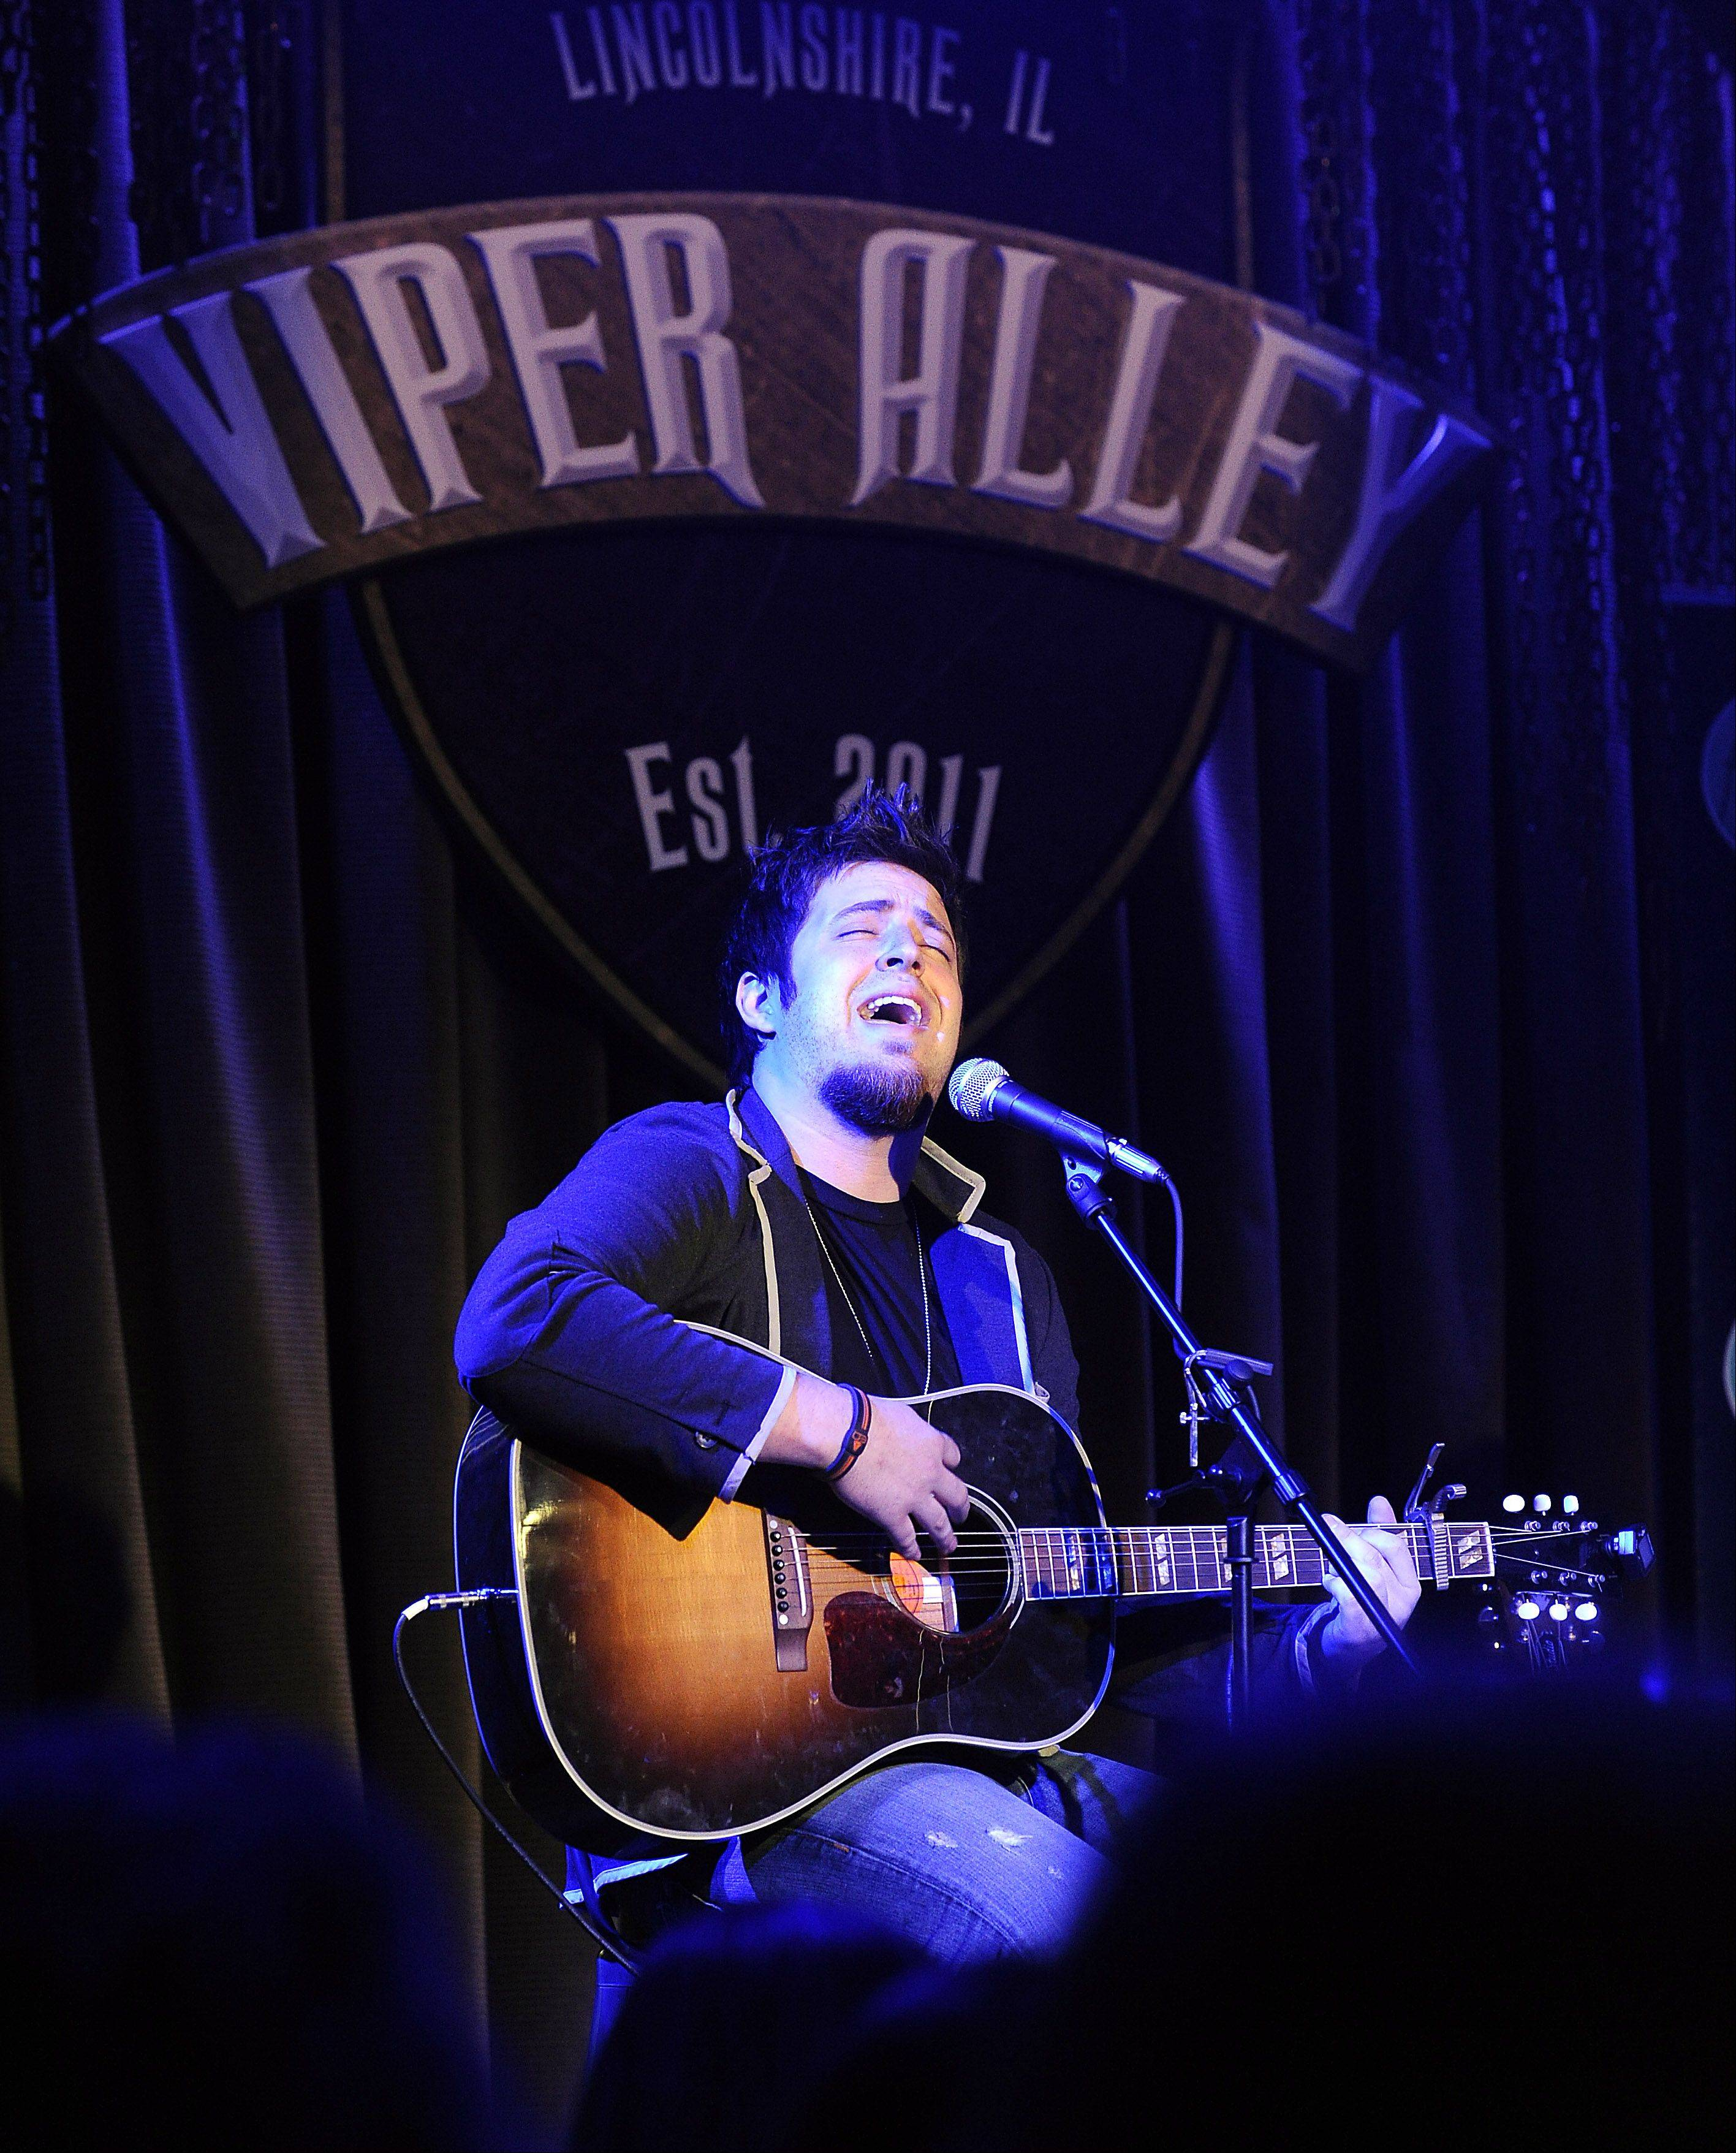 Viper Alley in Lincolnshire opened in 2011 with a concert from American Idol winner Lee DeWyze. The Mount Prospect native returns to the venue for another performance April 19.